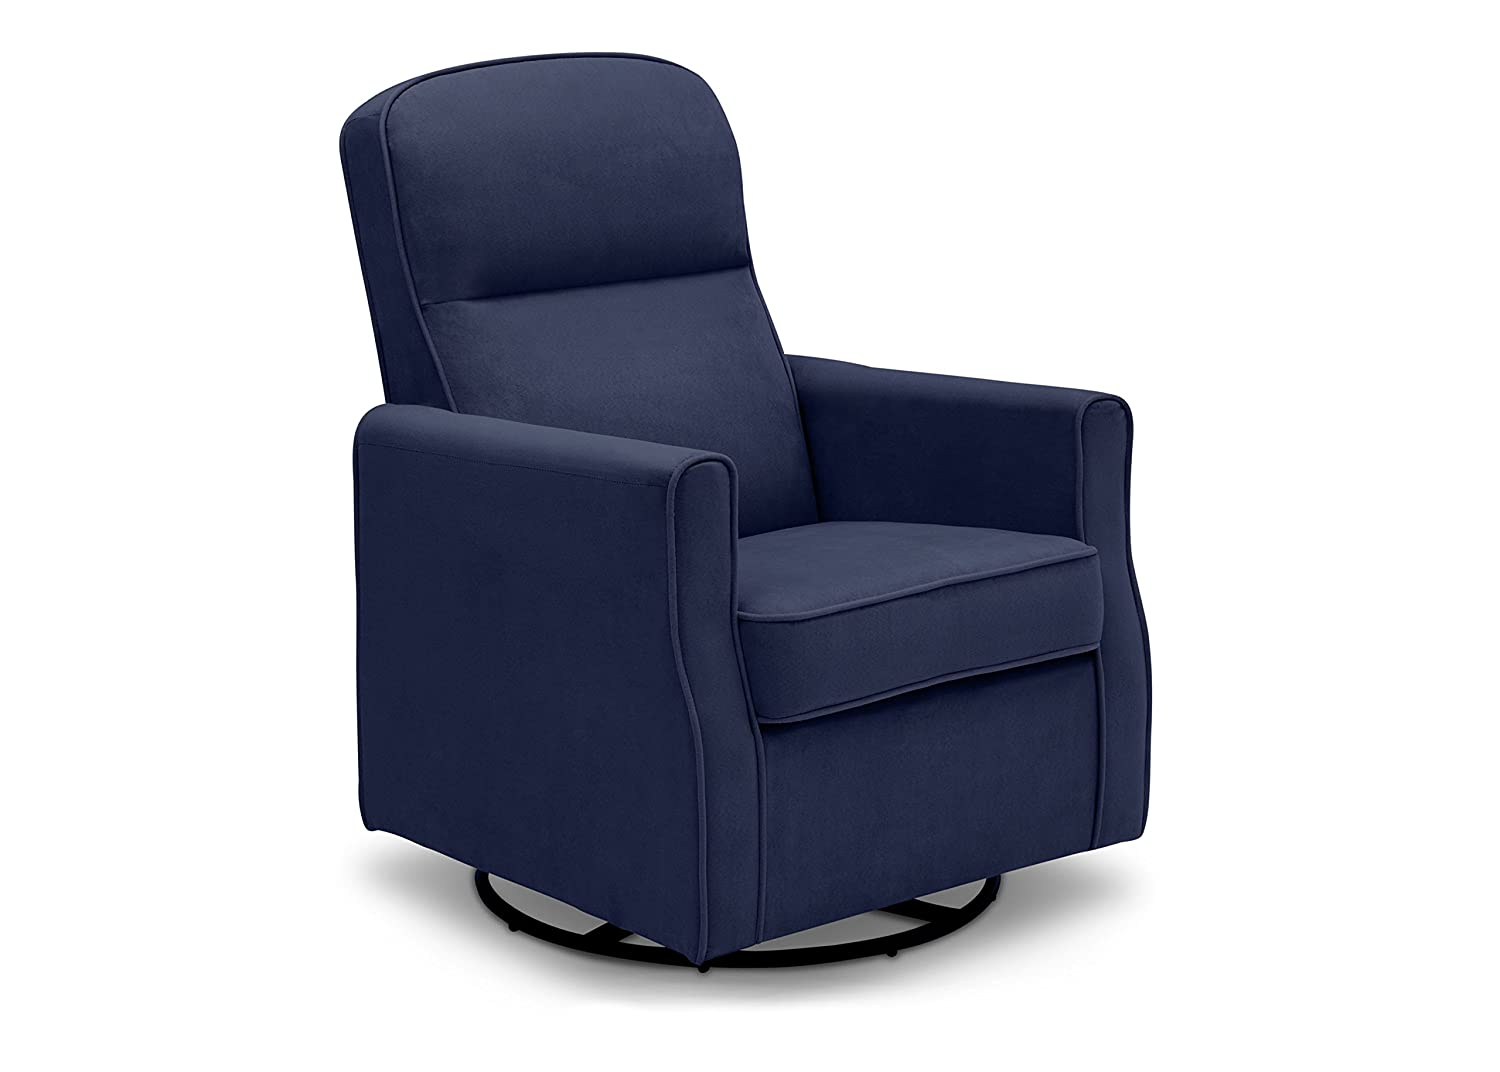 Delta Children Clair Slim Nursery Glider Swivel Rocker Chair, Navy